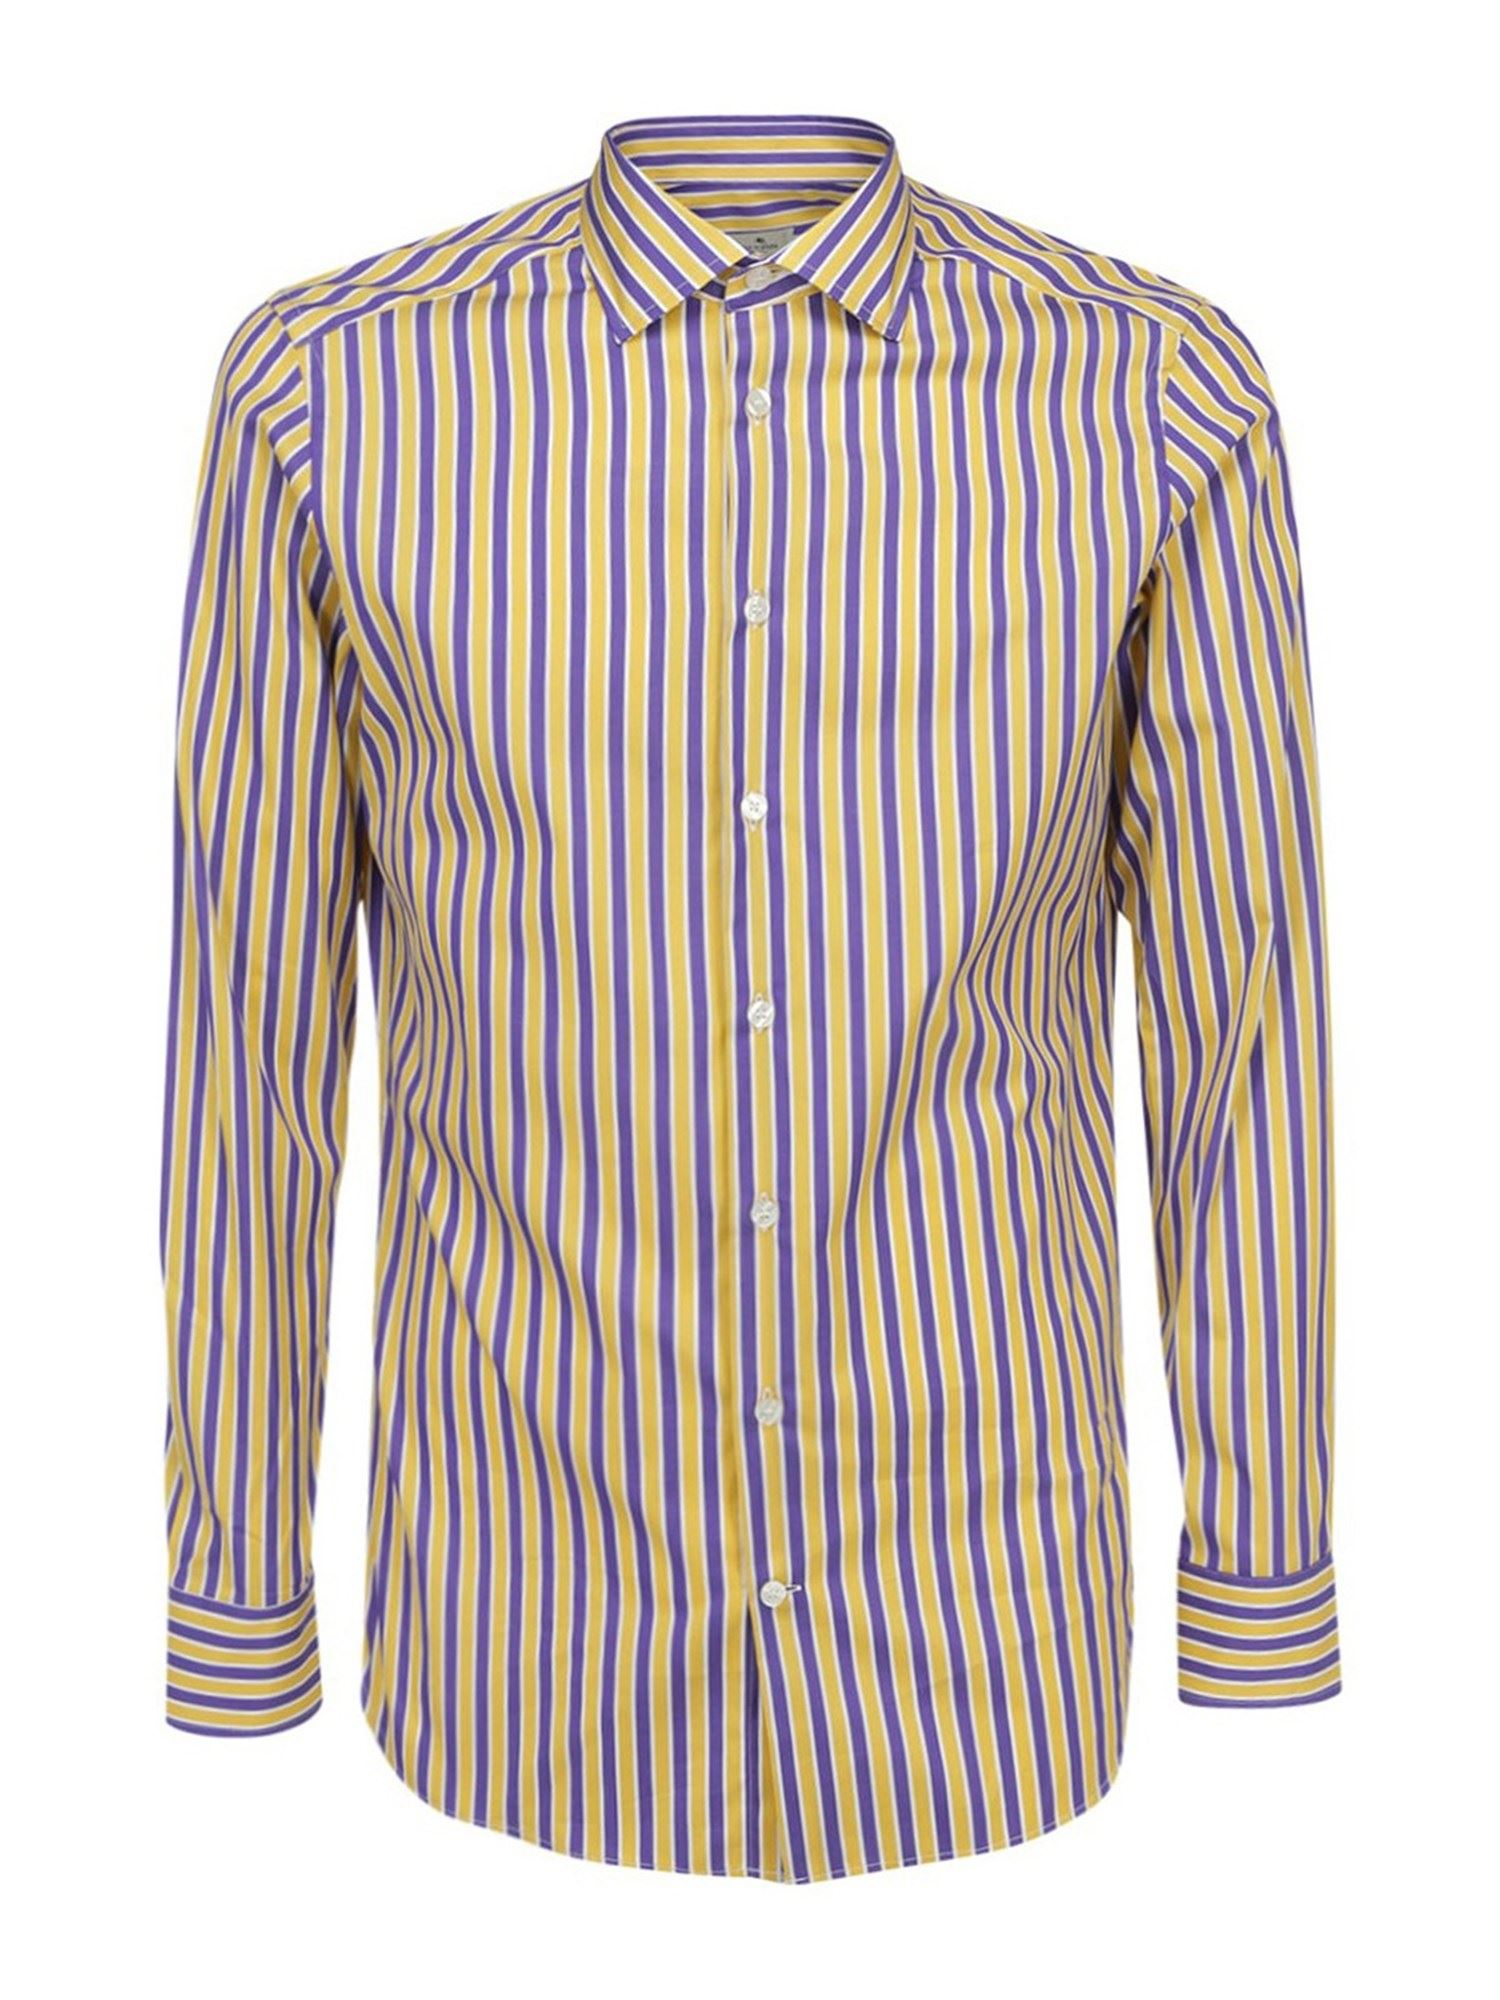 Etro COTTON STRIPED SLIM FIT SHIRT IN MULTICOLOR